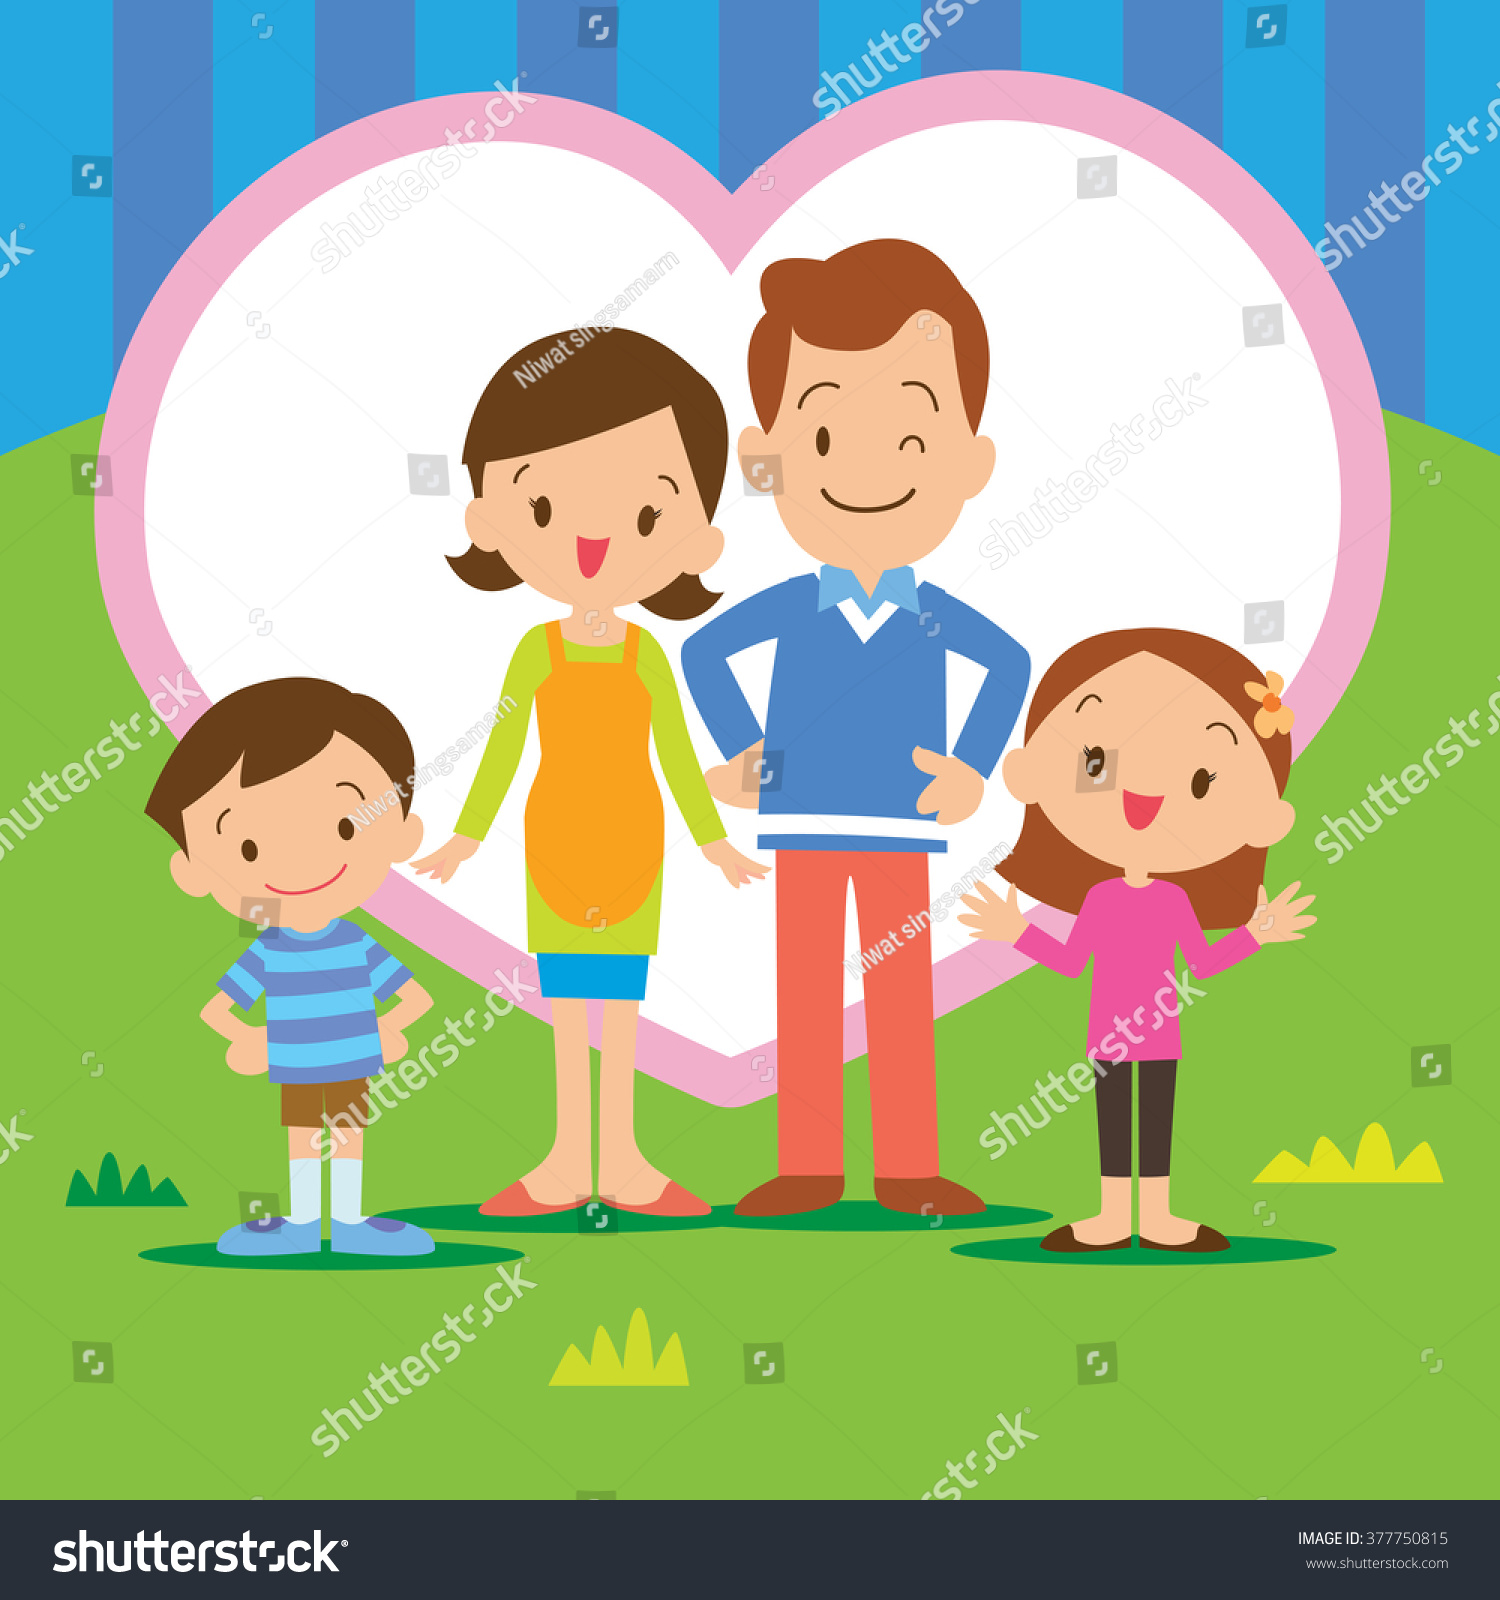 Portrait four member family posing together portrait of four member family posing together smiling happy with heart background voltagebd Images